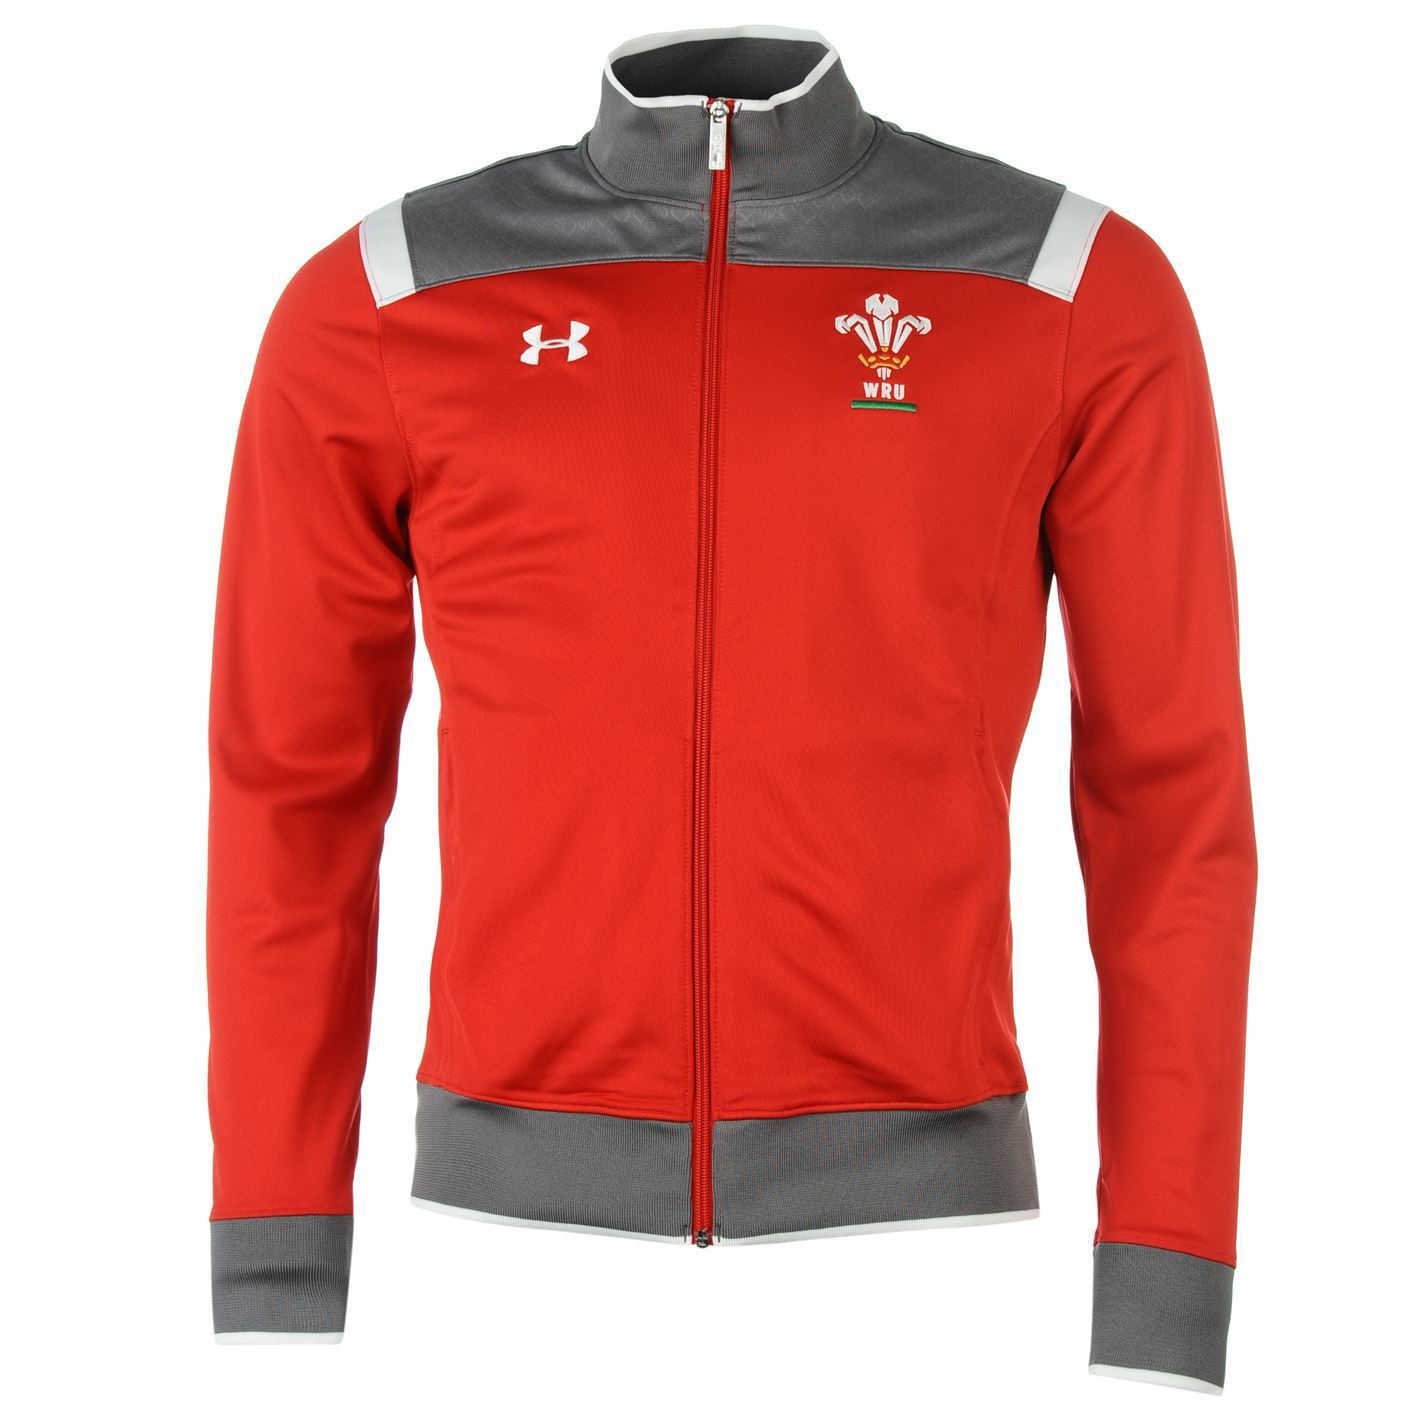 under armour tracksuit. under armour mens wru track long sleeve jacket full zip tracksuit top clothing h